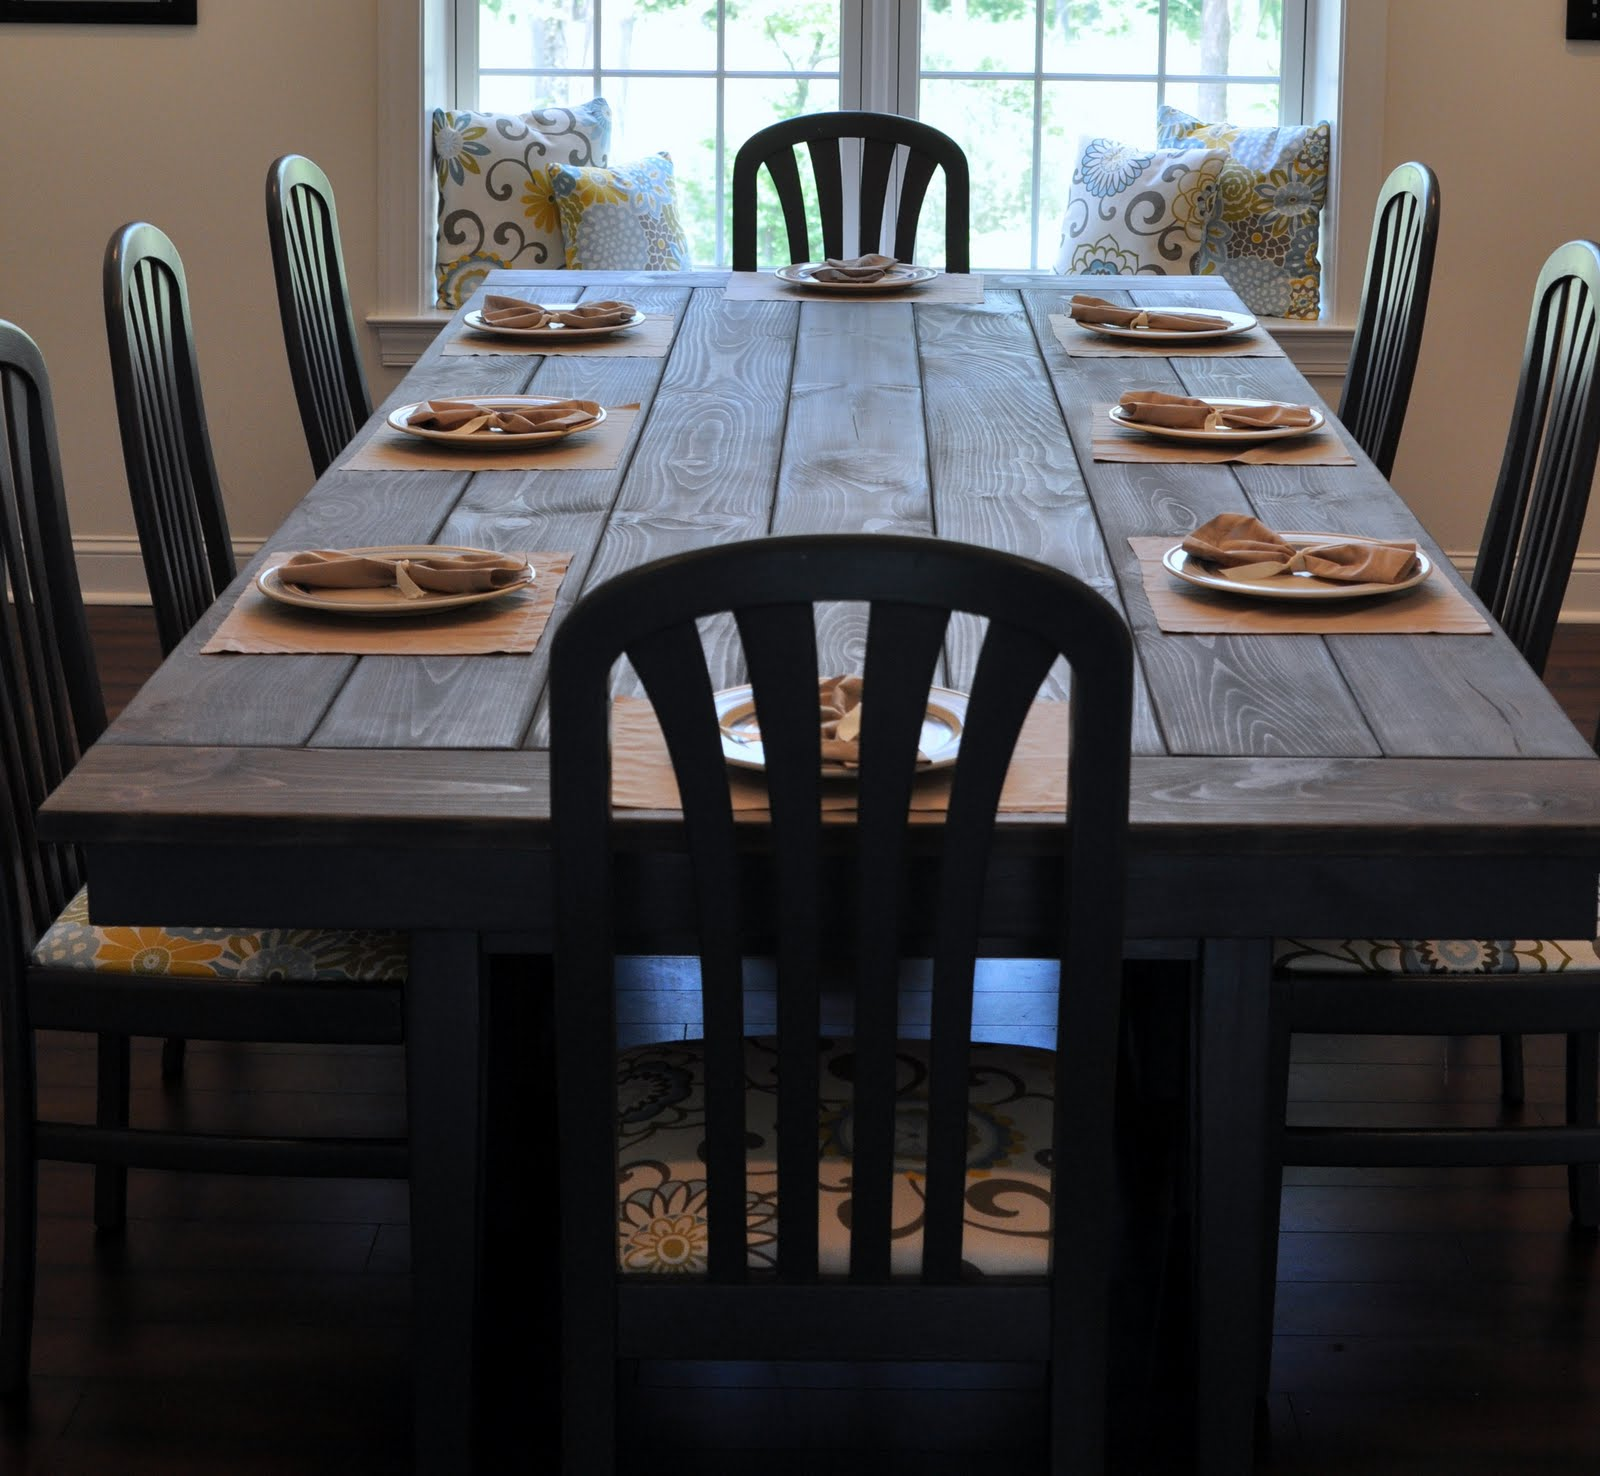 Farmhouse Dining Room Tables farmhouse table remix {how to build a farmhouse table} - east